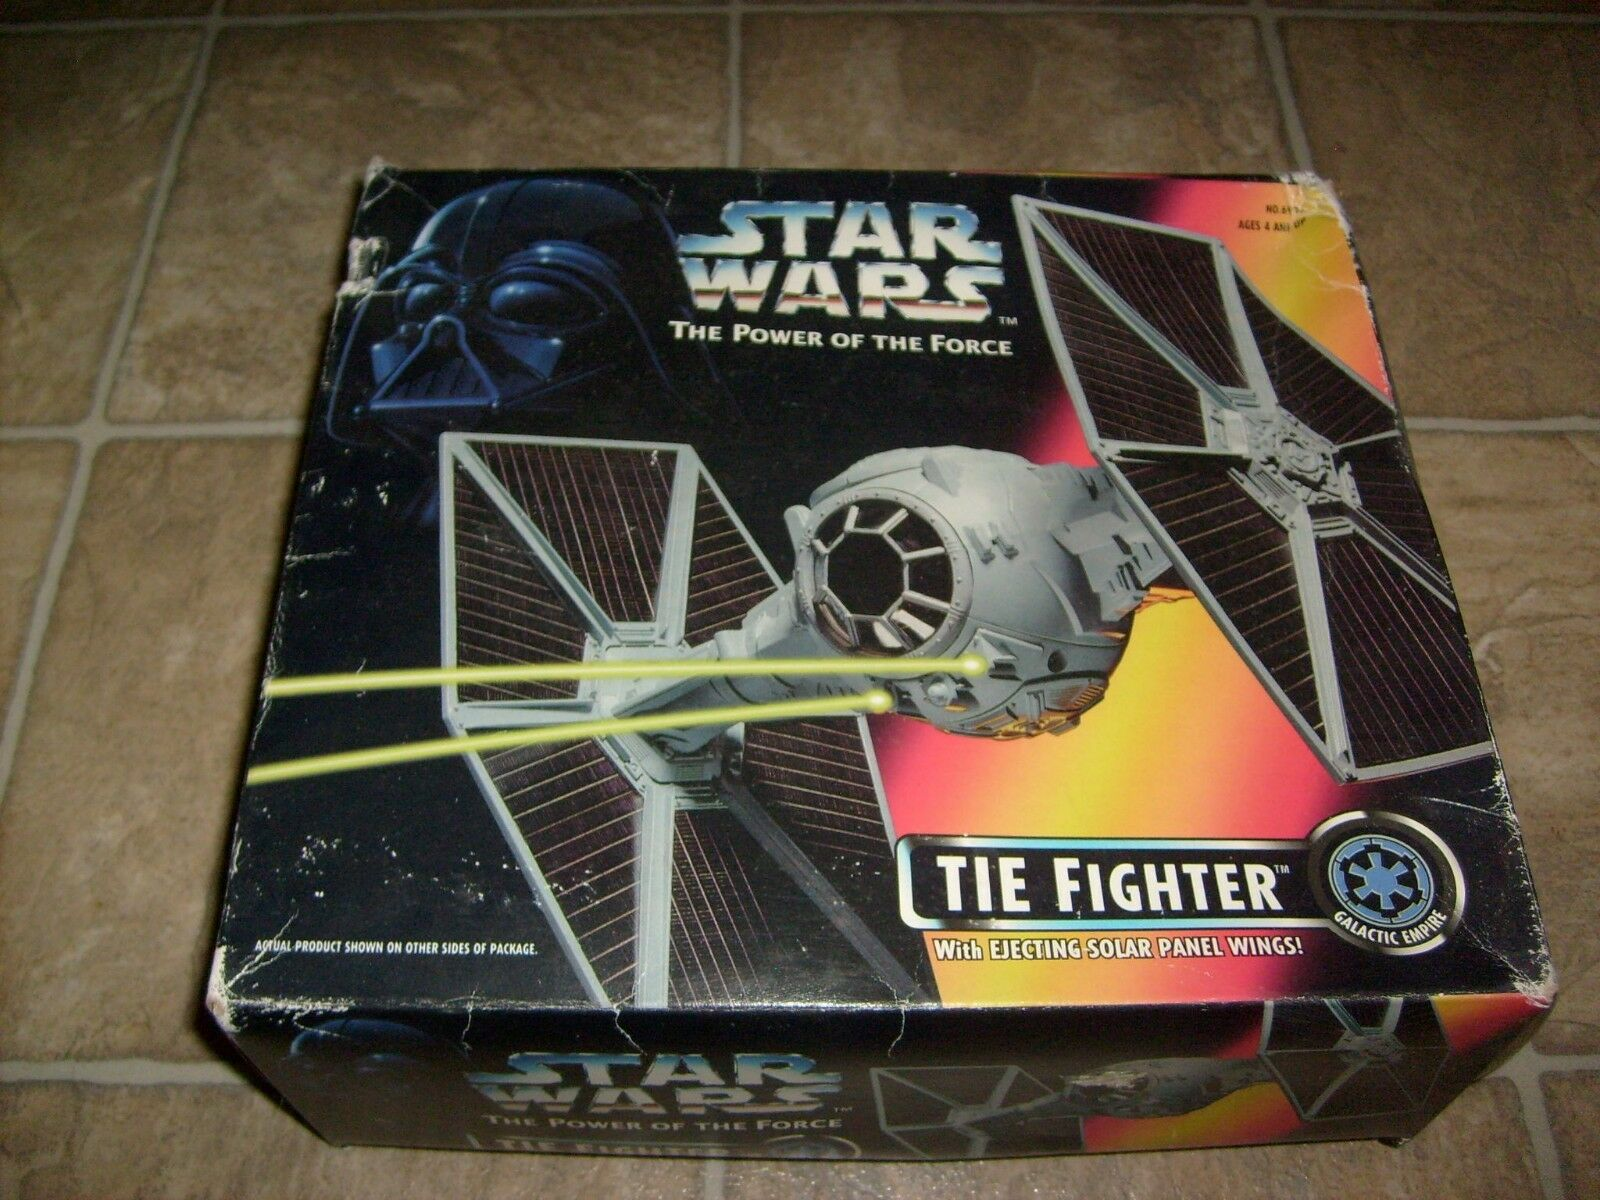 STAR WARS POWER OF THE FORCE TIE FIGHTER FIGURE VEHICLE SET NEW MIB